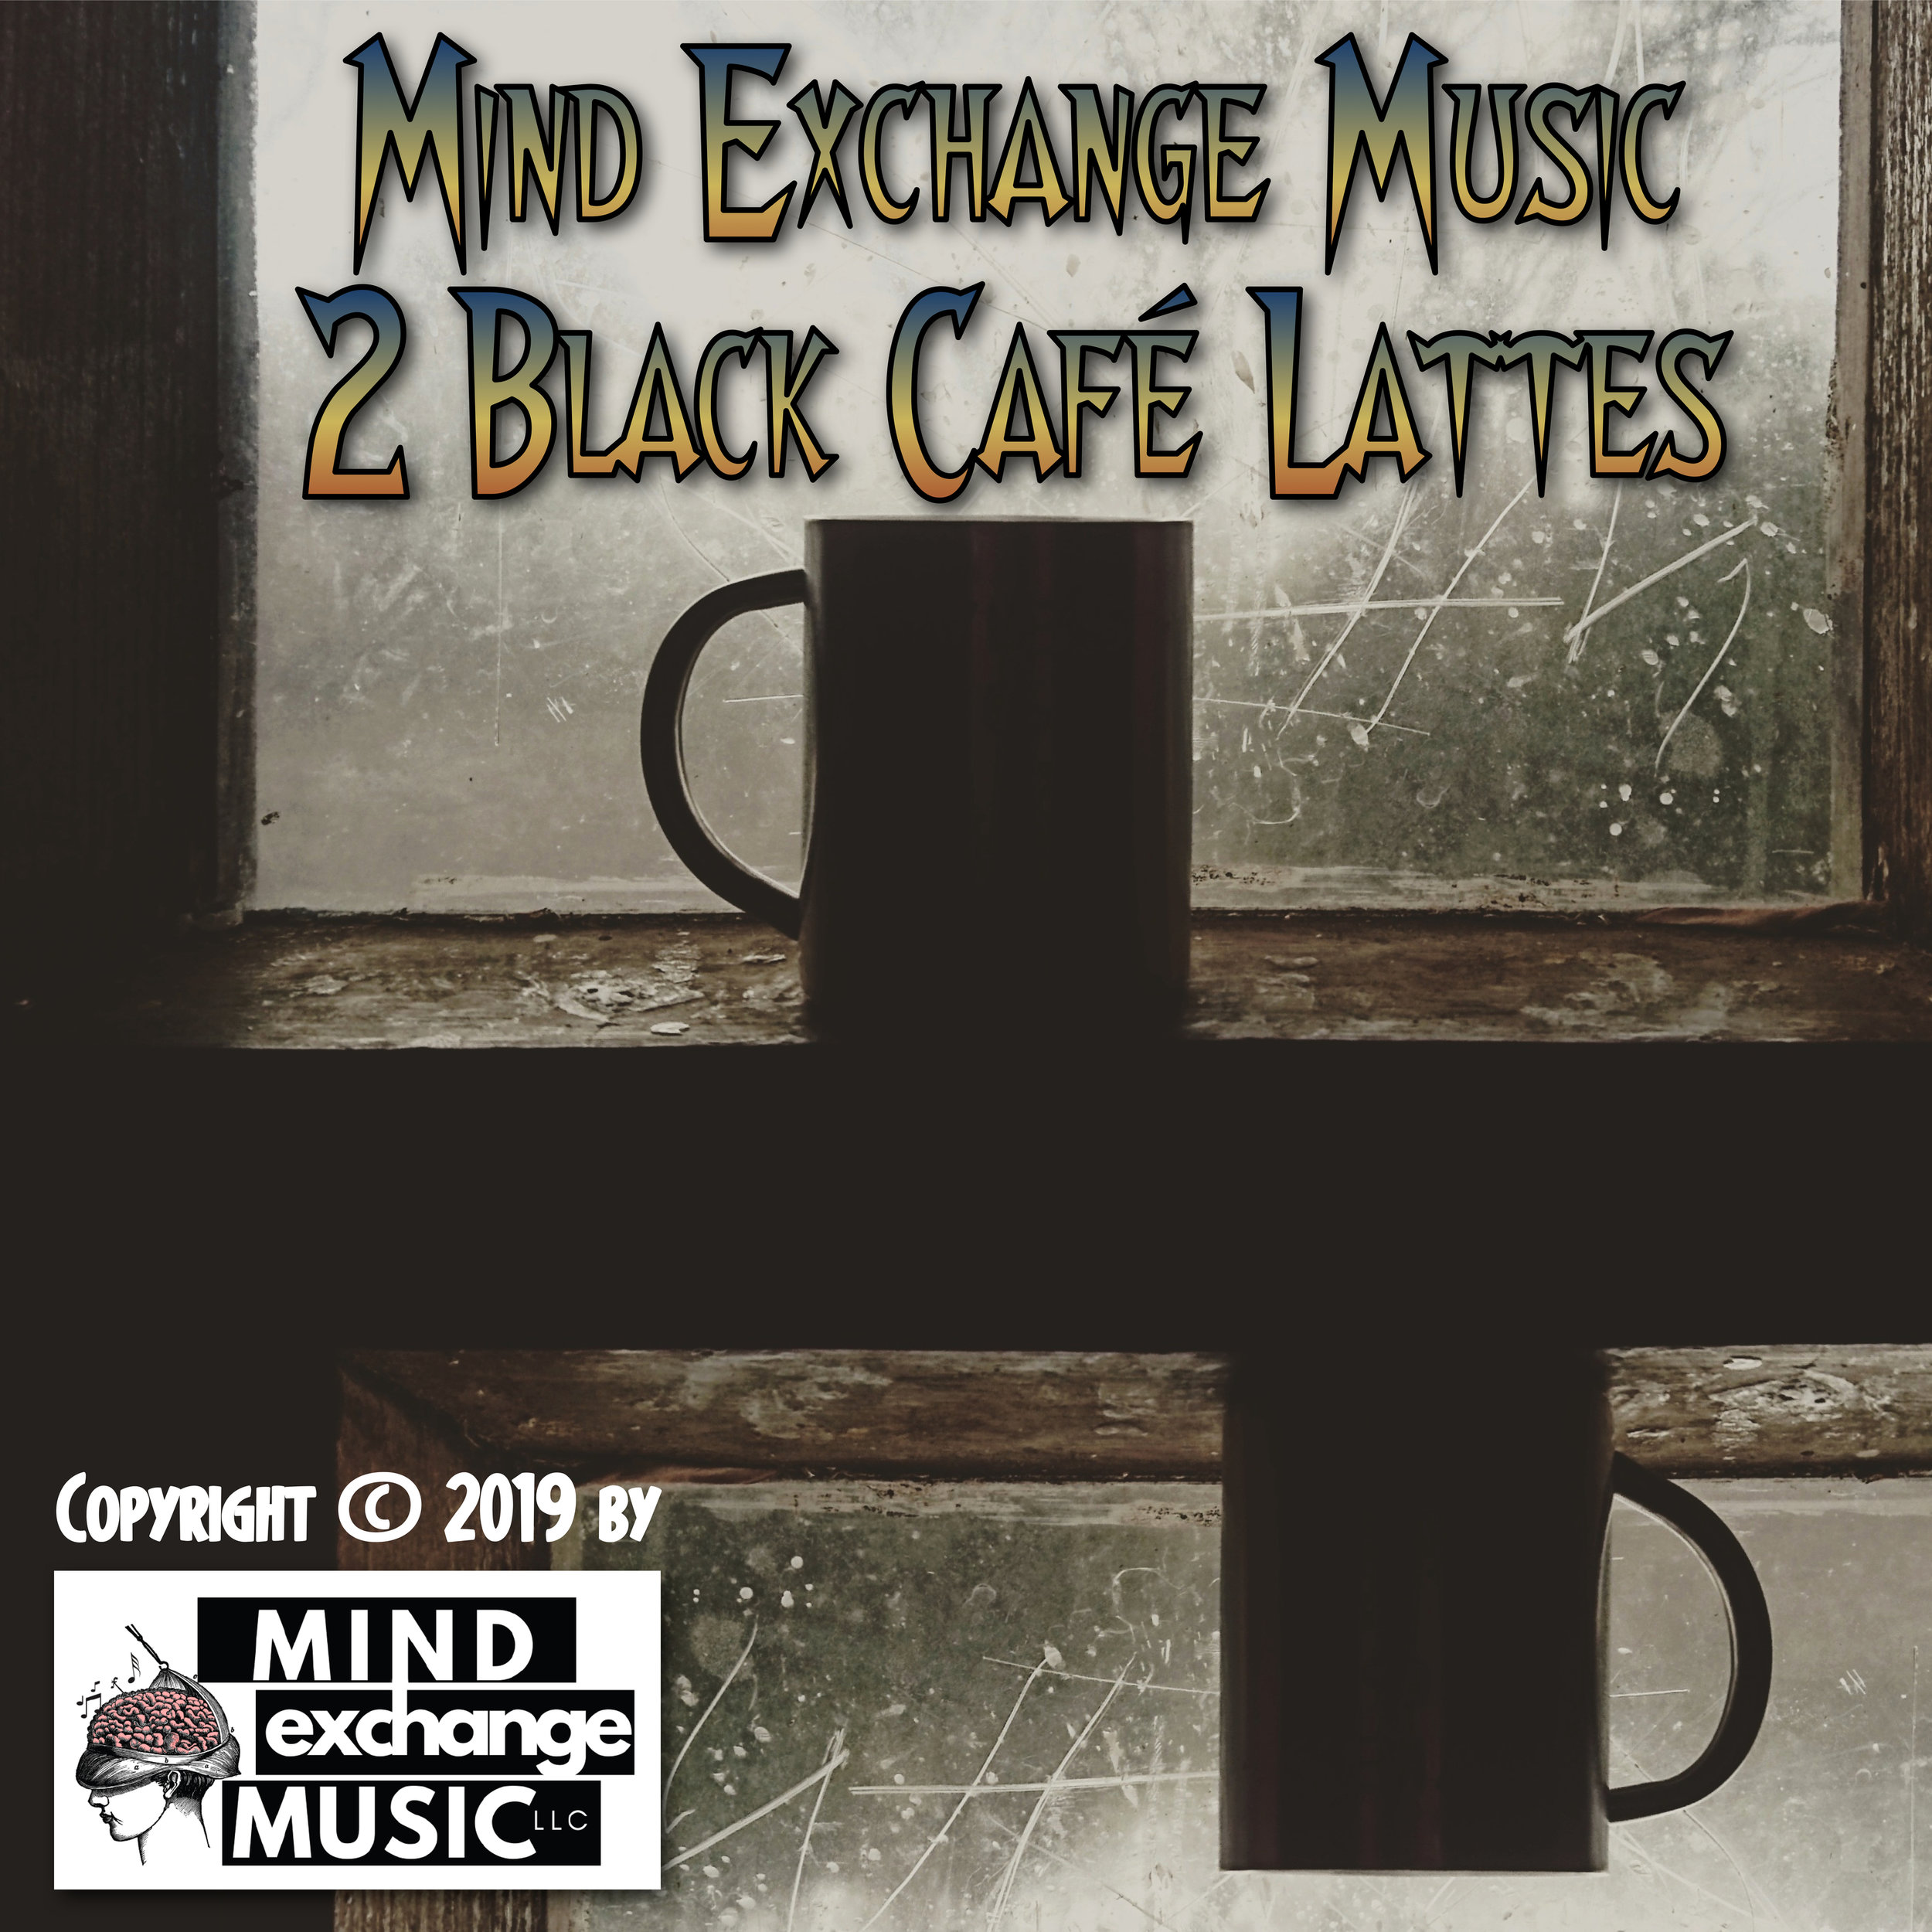 2 Black Cafe Lattes (Live Film Score)